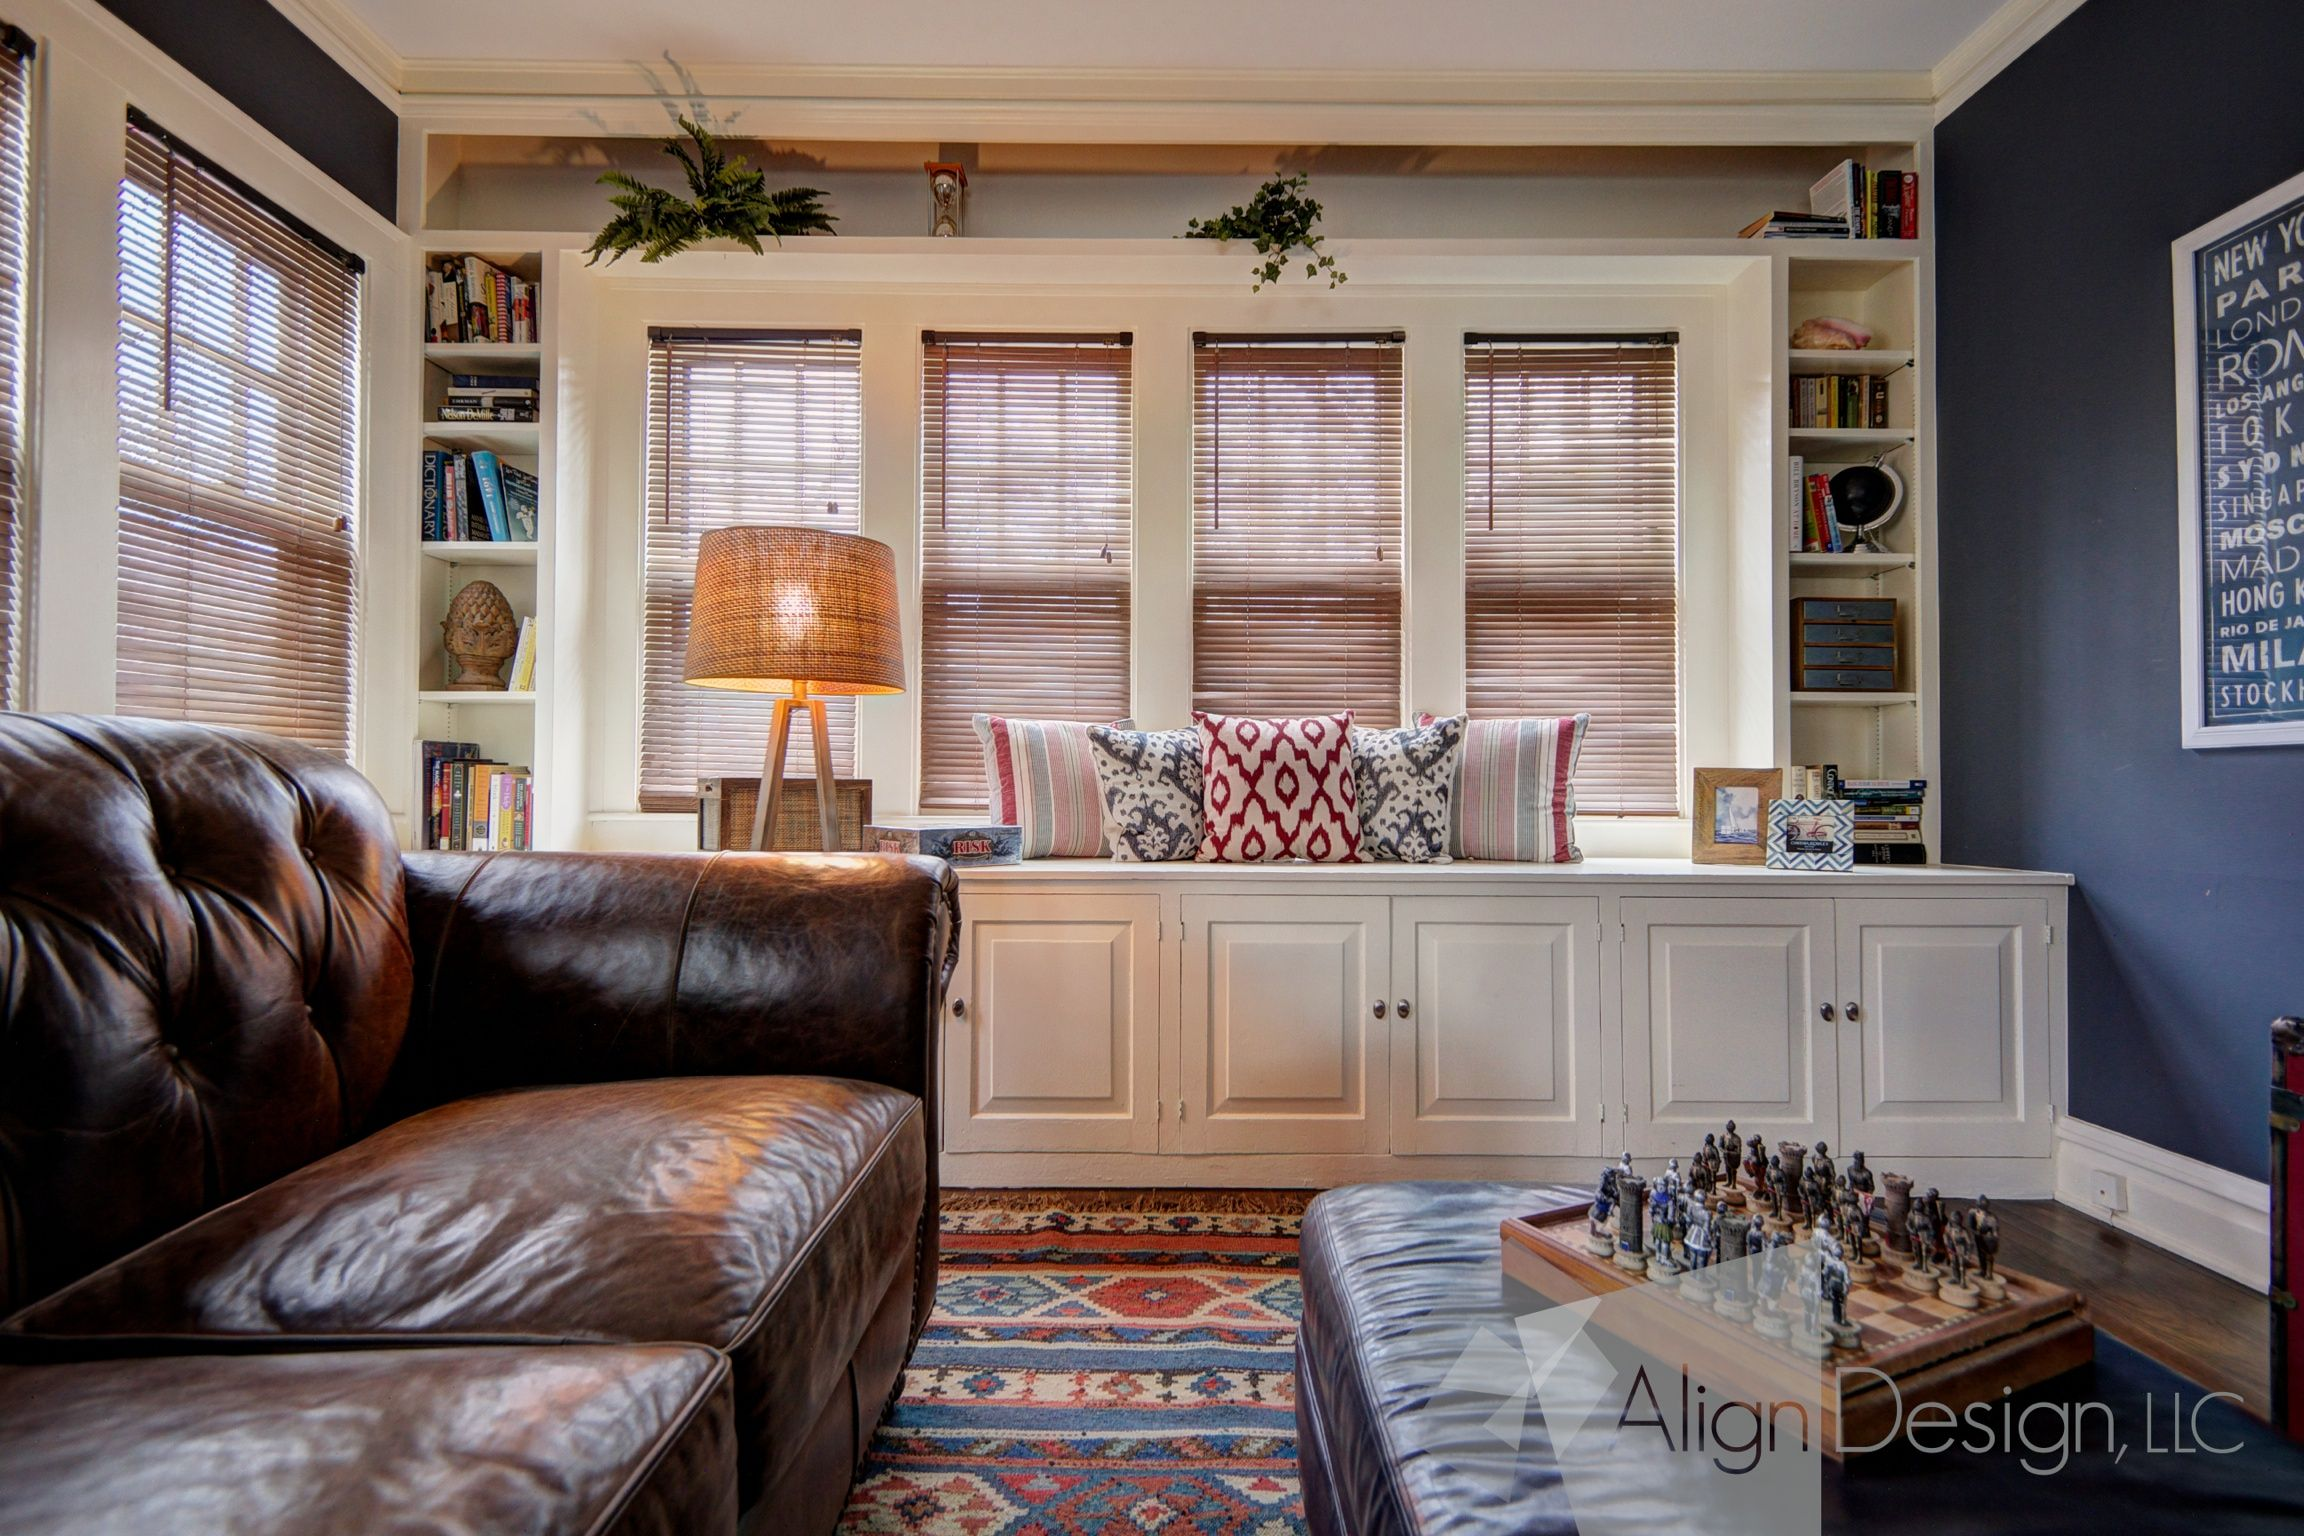 Offering Residential U0026 Commercial Interior Design In Asheville. Our Interior  Designers Combine Talent With Experience U0026 Intuition.